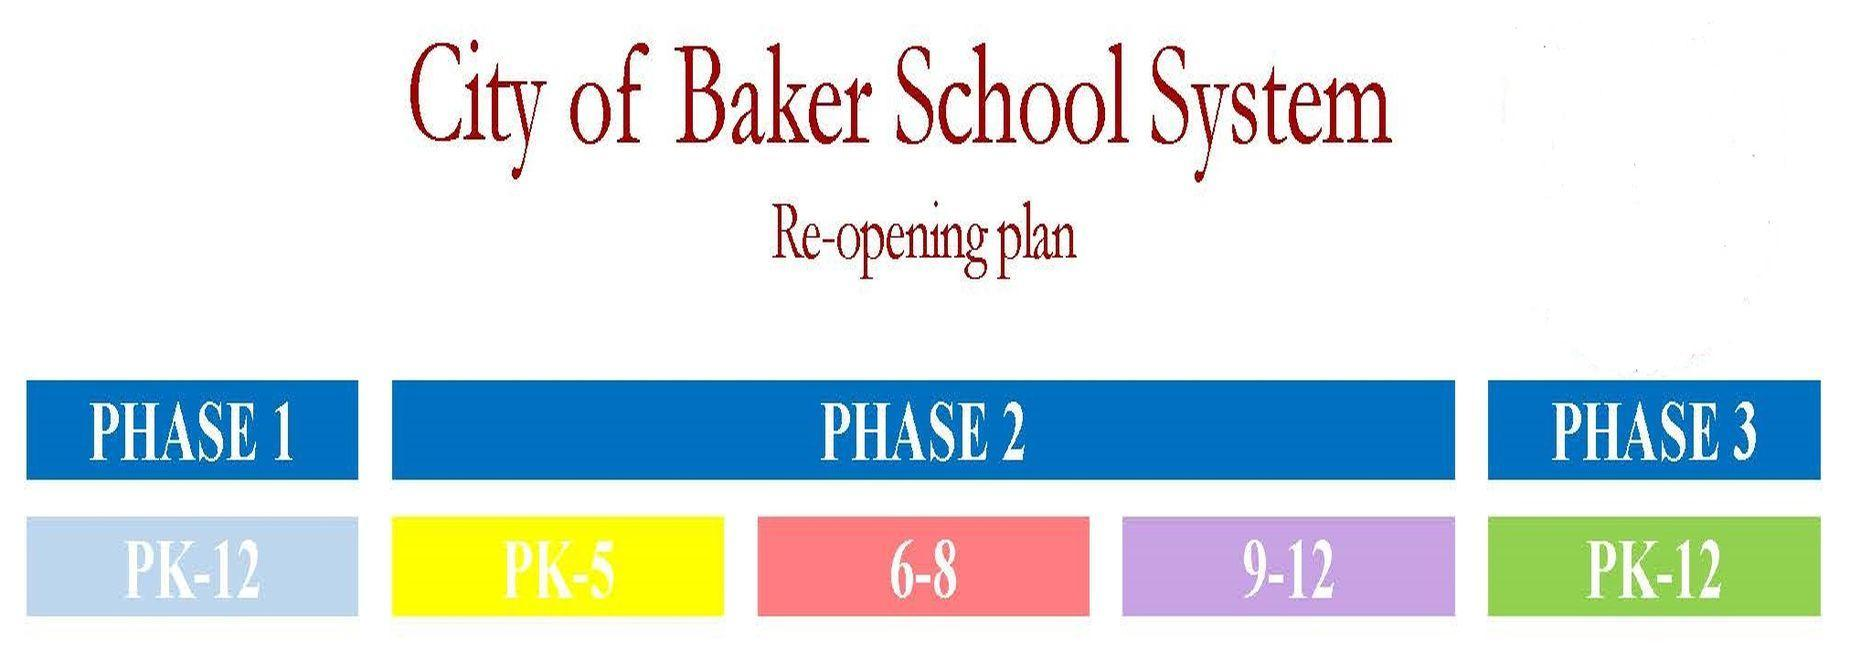 a graphic with link to the City of Baker School System Re-opening plan for 2020 - 2021